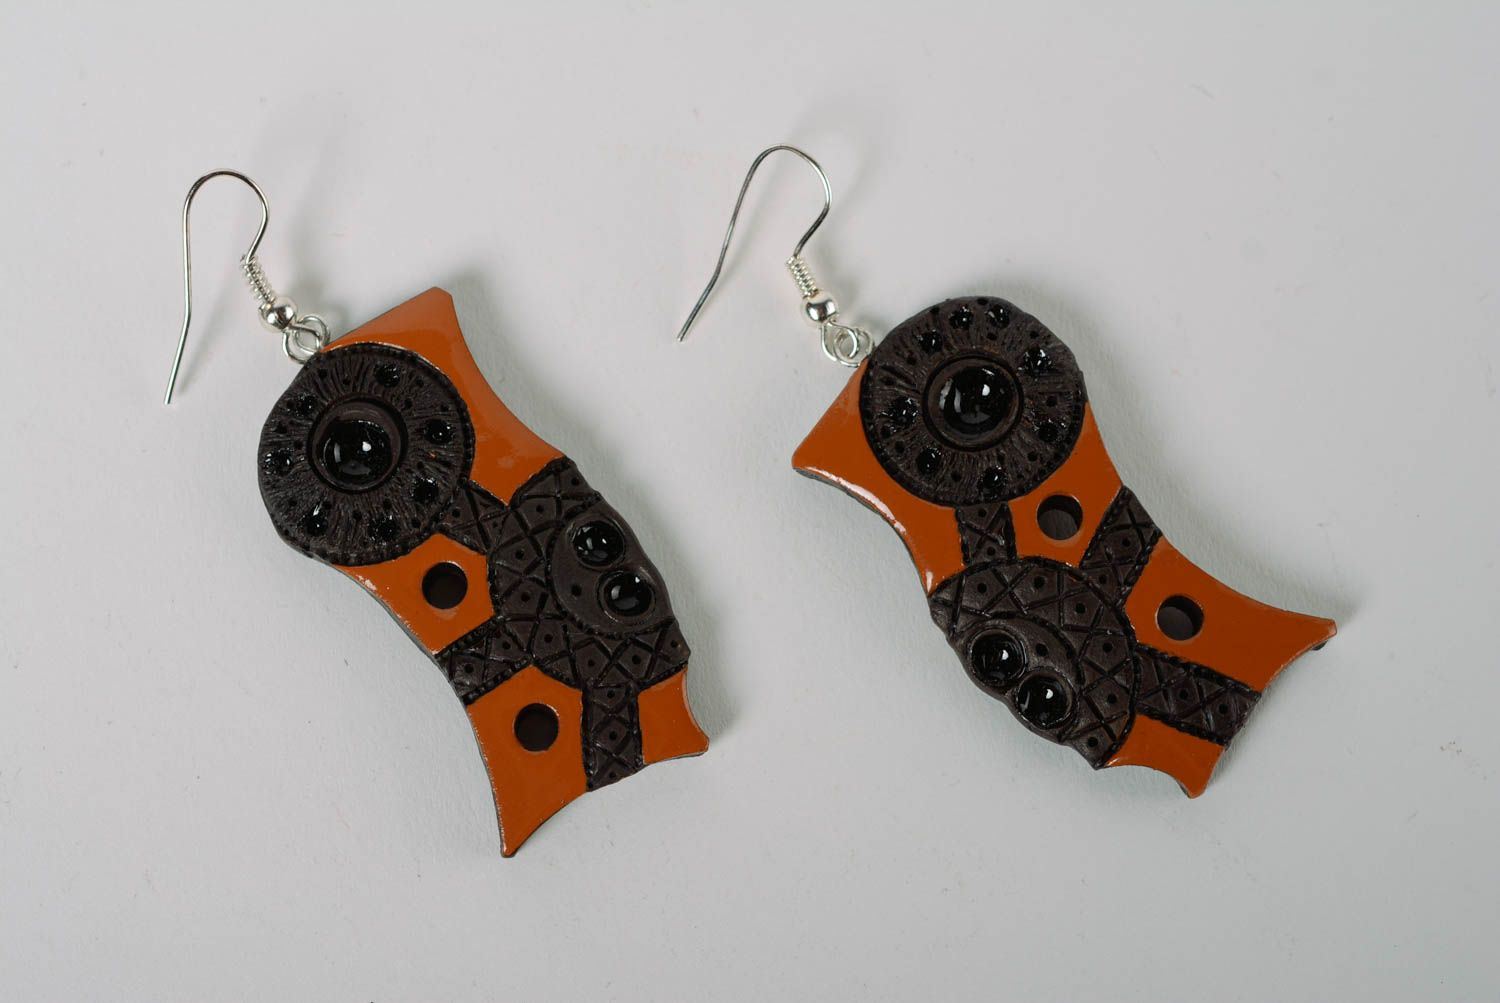 dangle earrings Handmade women's designer clay earrings painted with color enamels - MADEheart.com